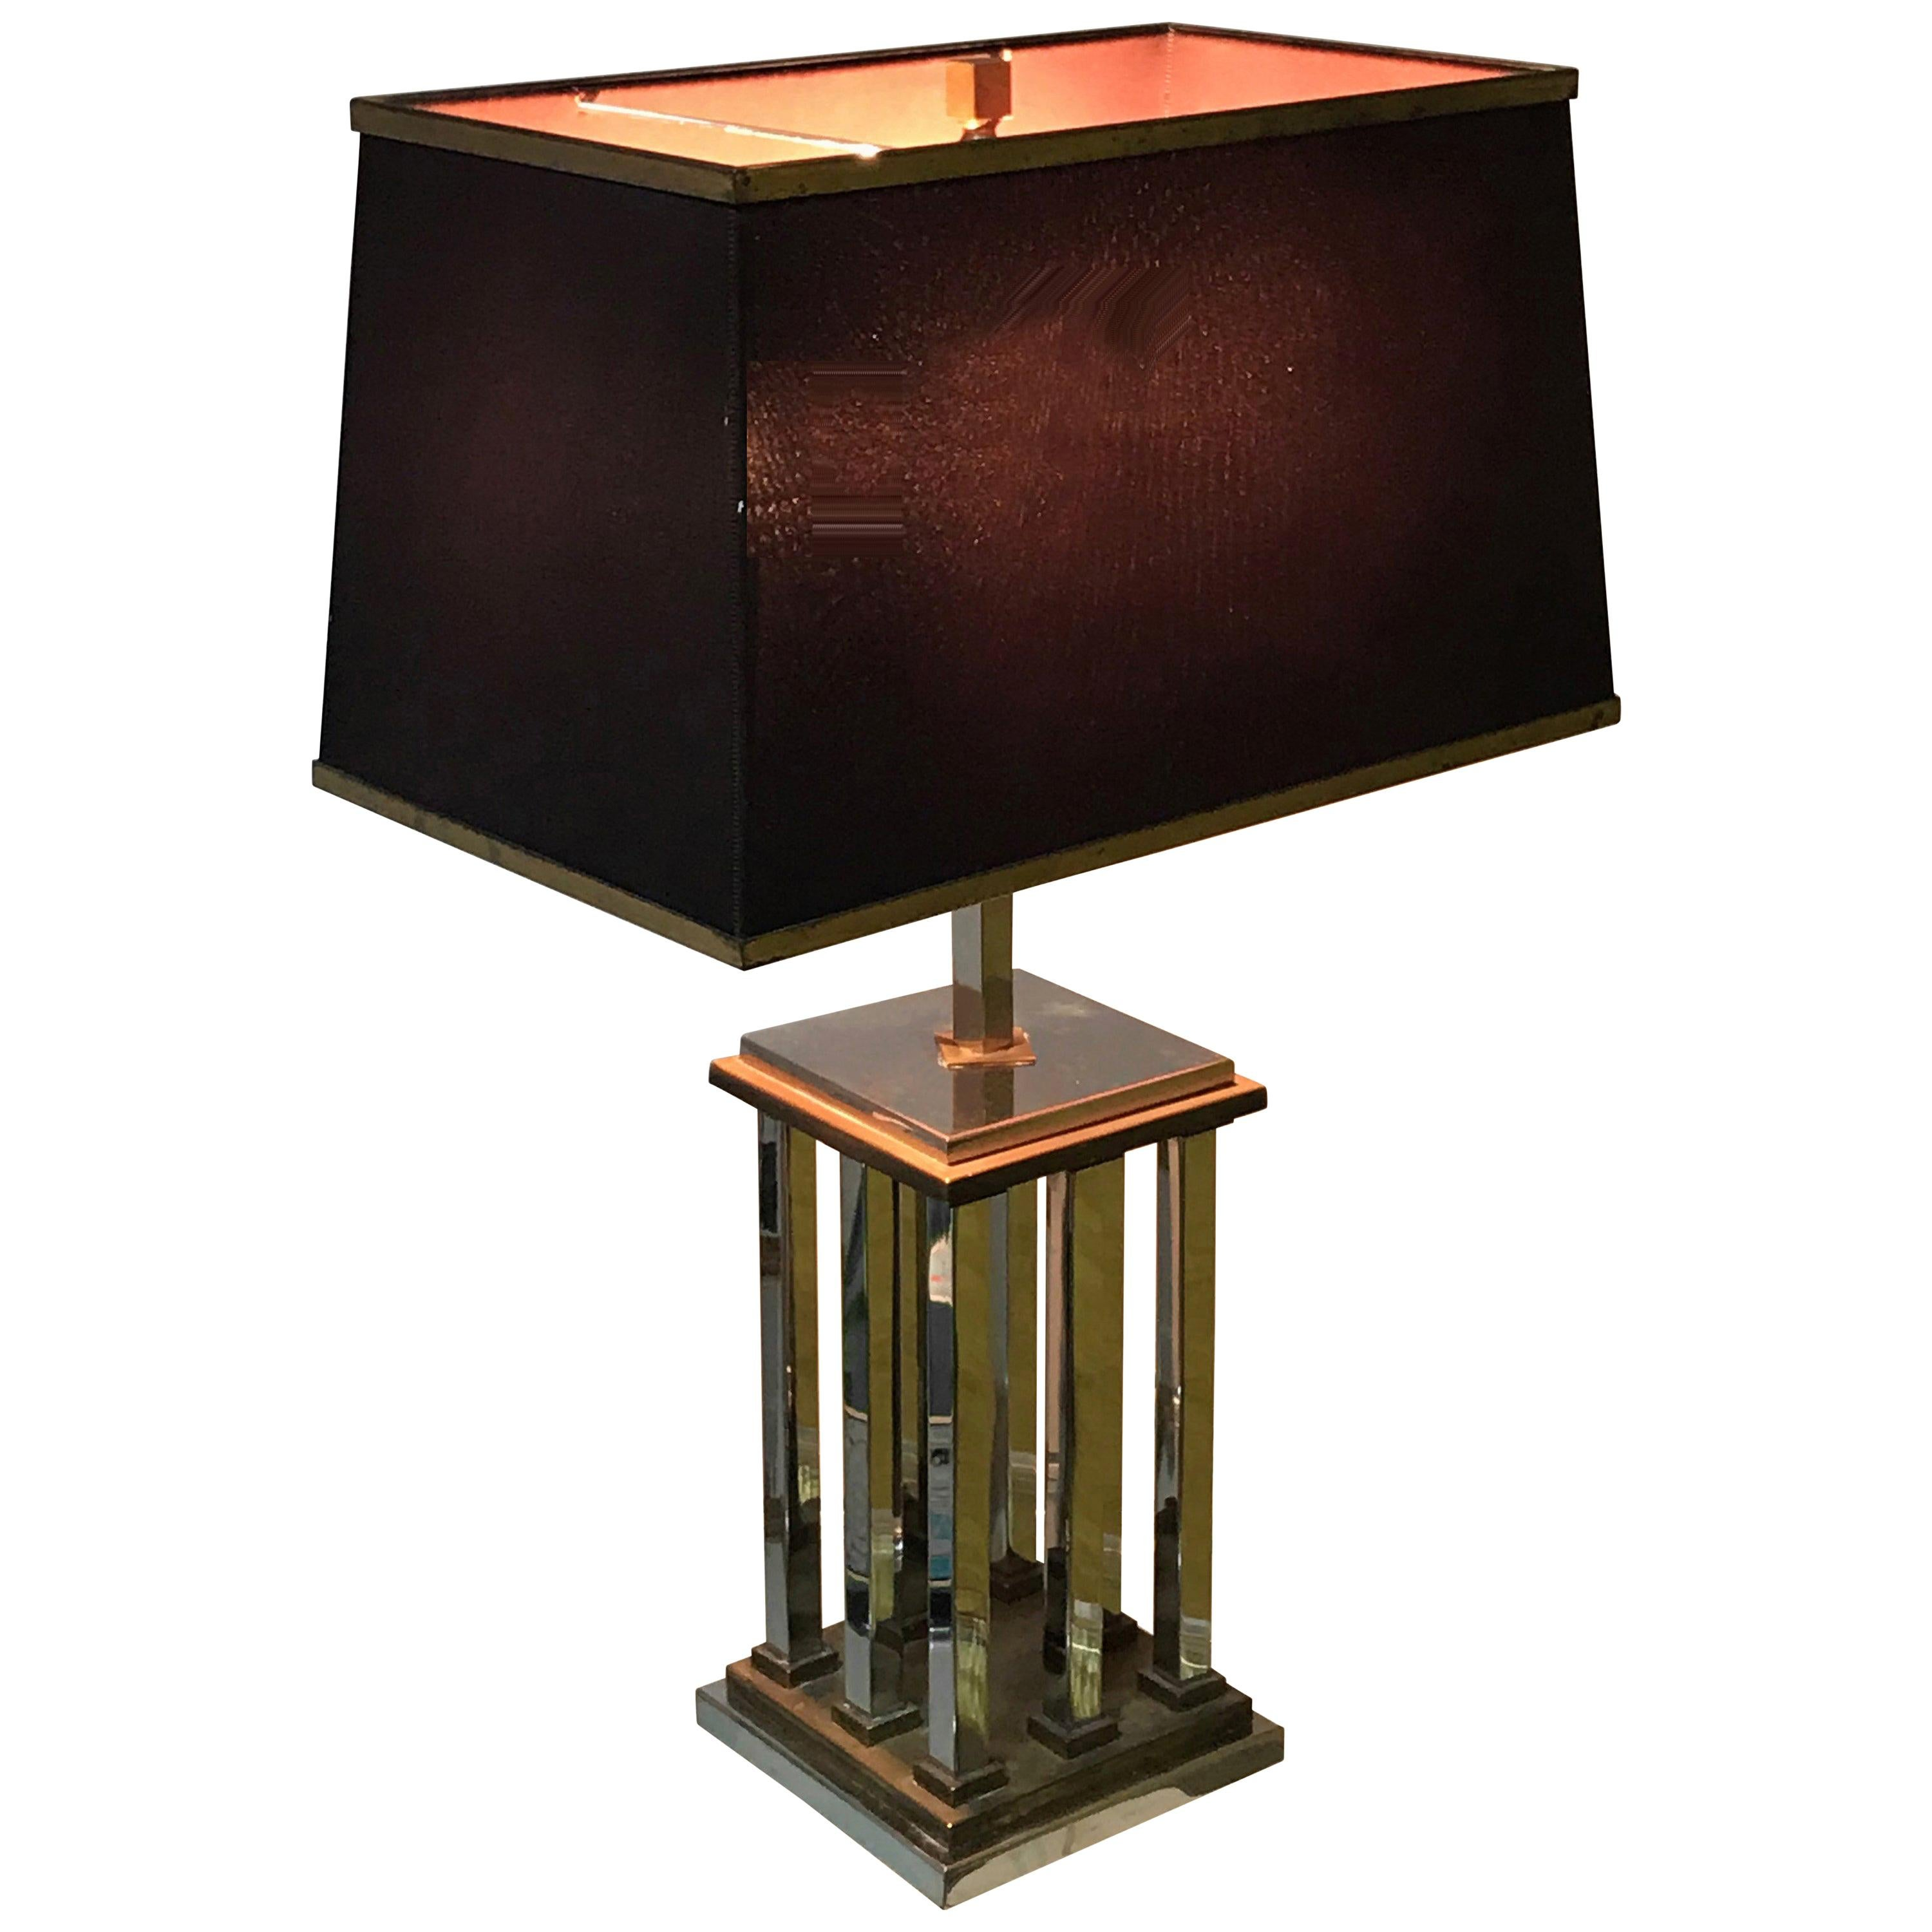 1970s Italian Chrome and Brass Lamp after Romeo Rega, Vintage Table Lamp, Italy